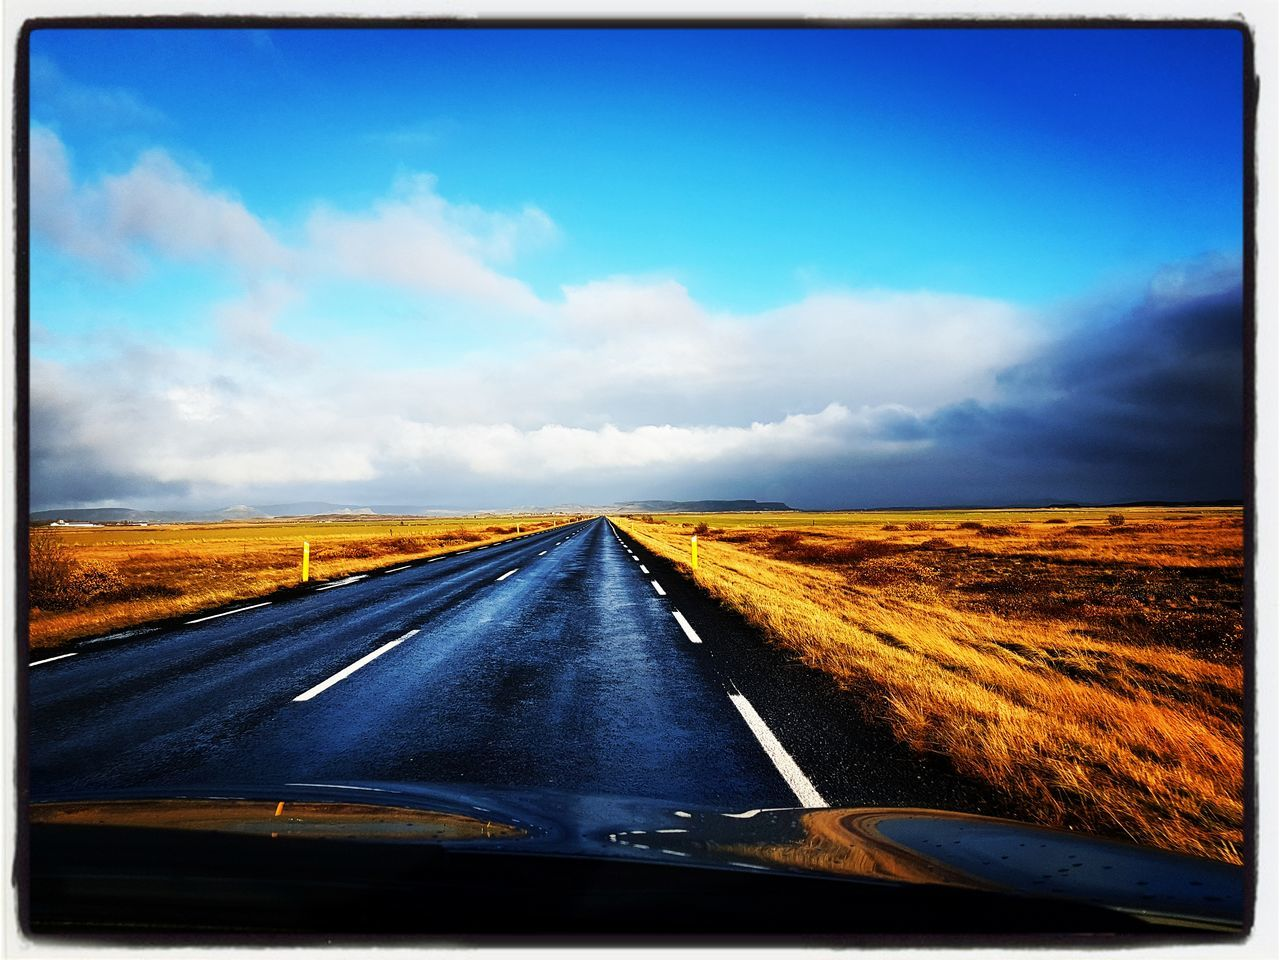 Travel Landscape Iceland Possibilities  Open Road Journey Freedom Where I'd Rather Be... Dont Look Back The Journey Is The Destination Possibilities Are Endless Driving First Eyeem Photo